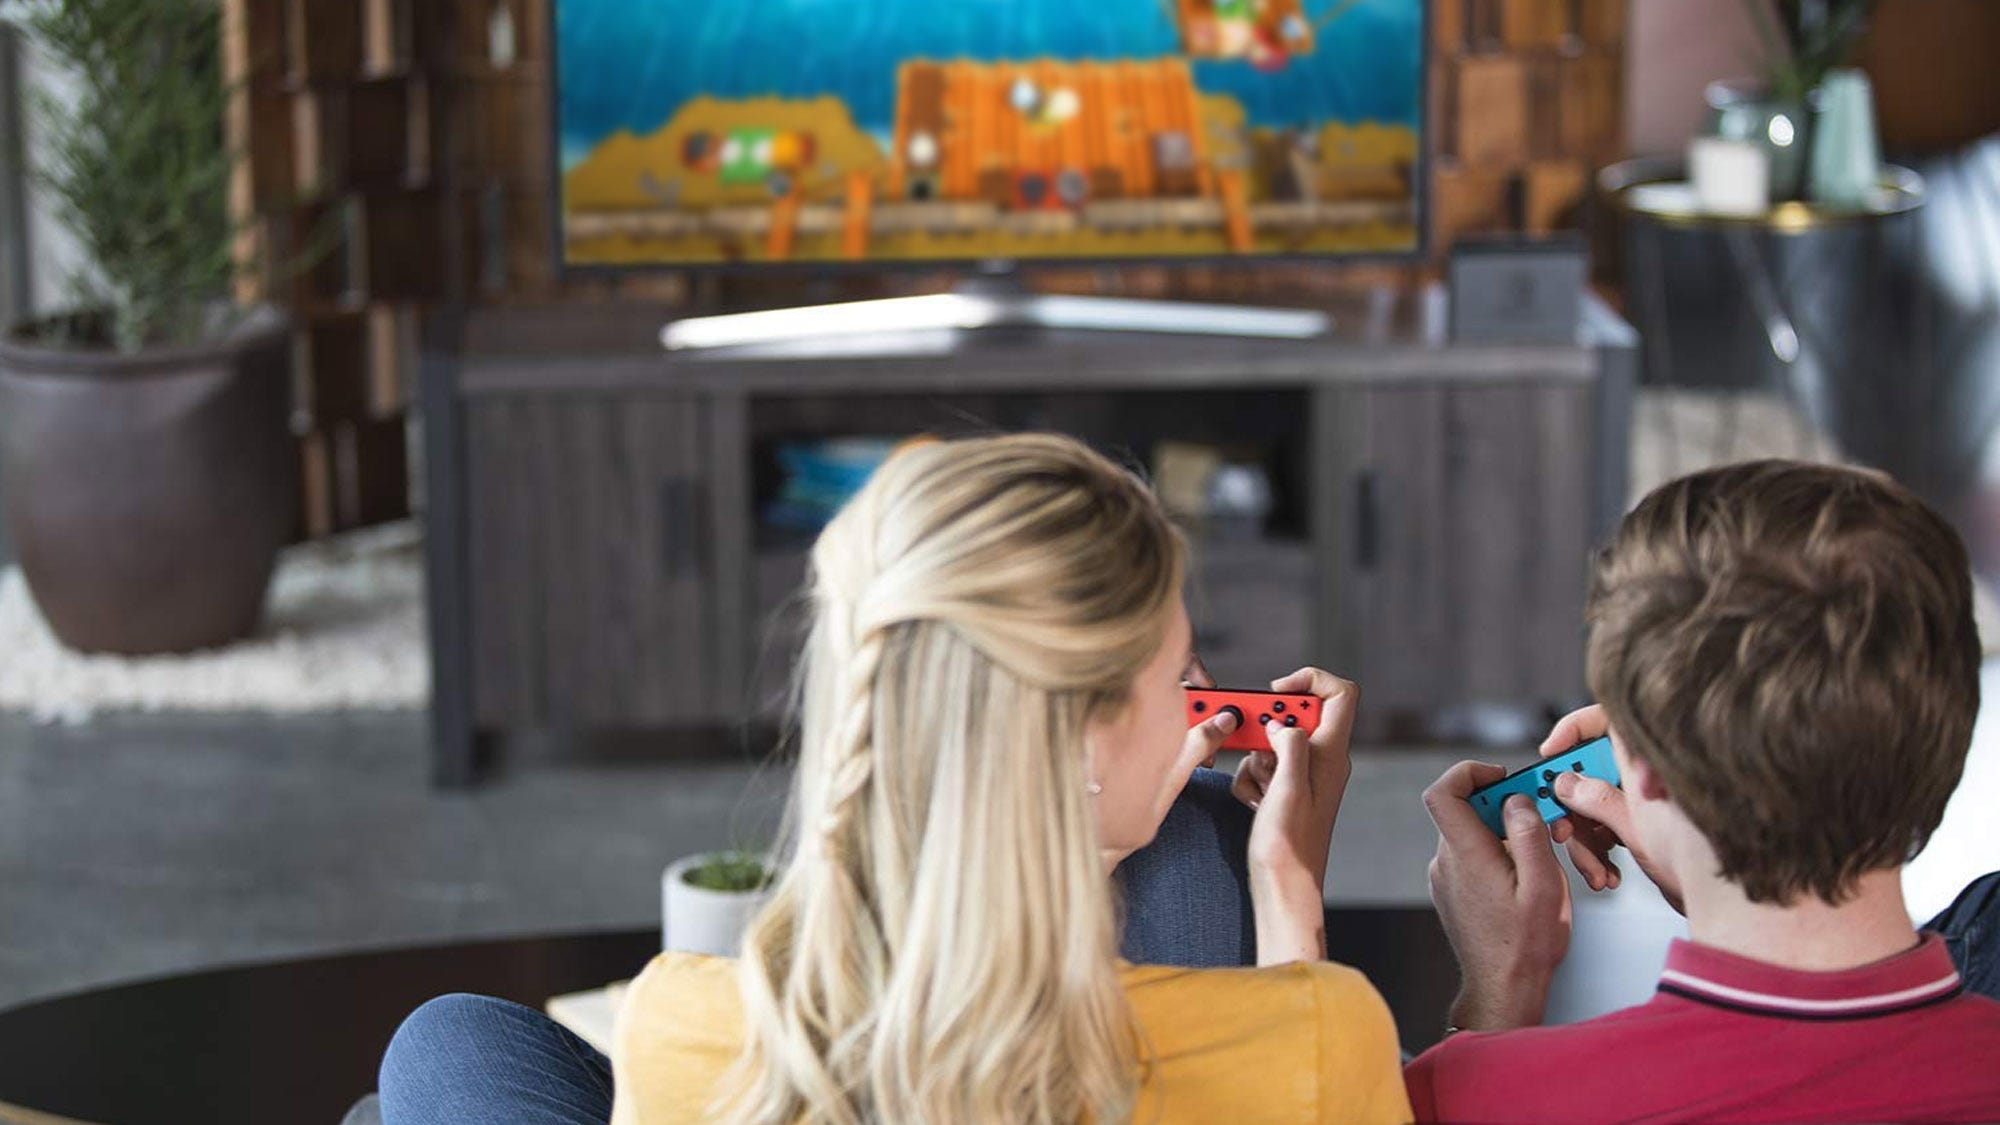 The Switch is a perfect platform for local co-op multiplayer games.